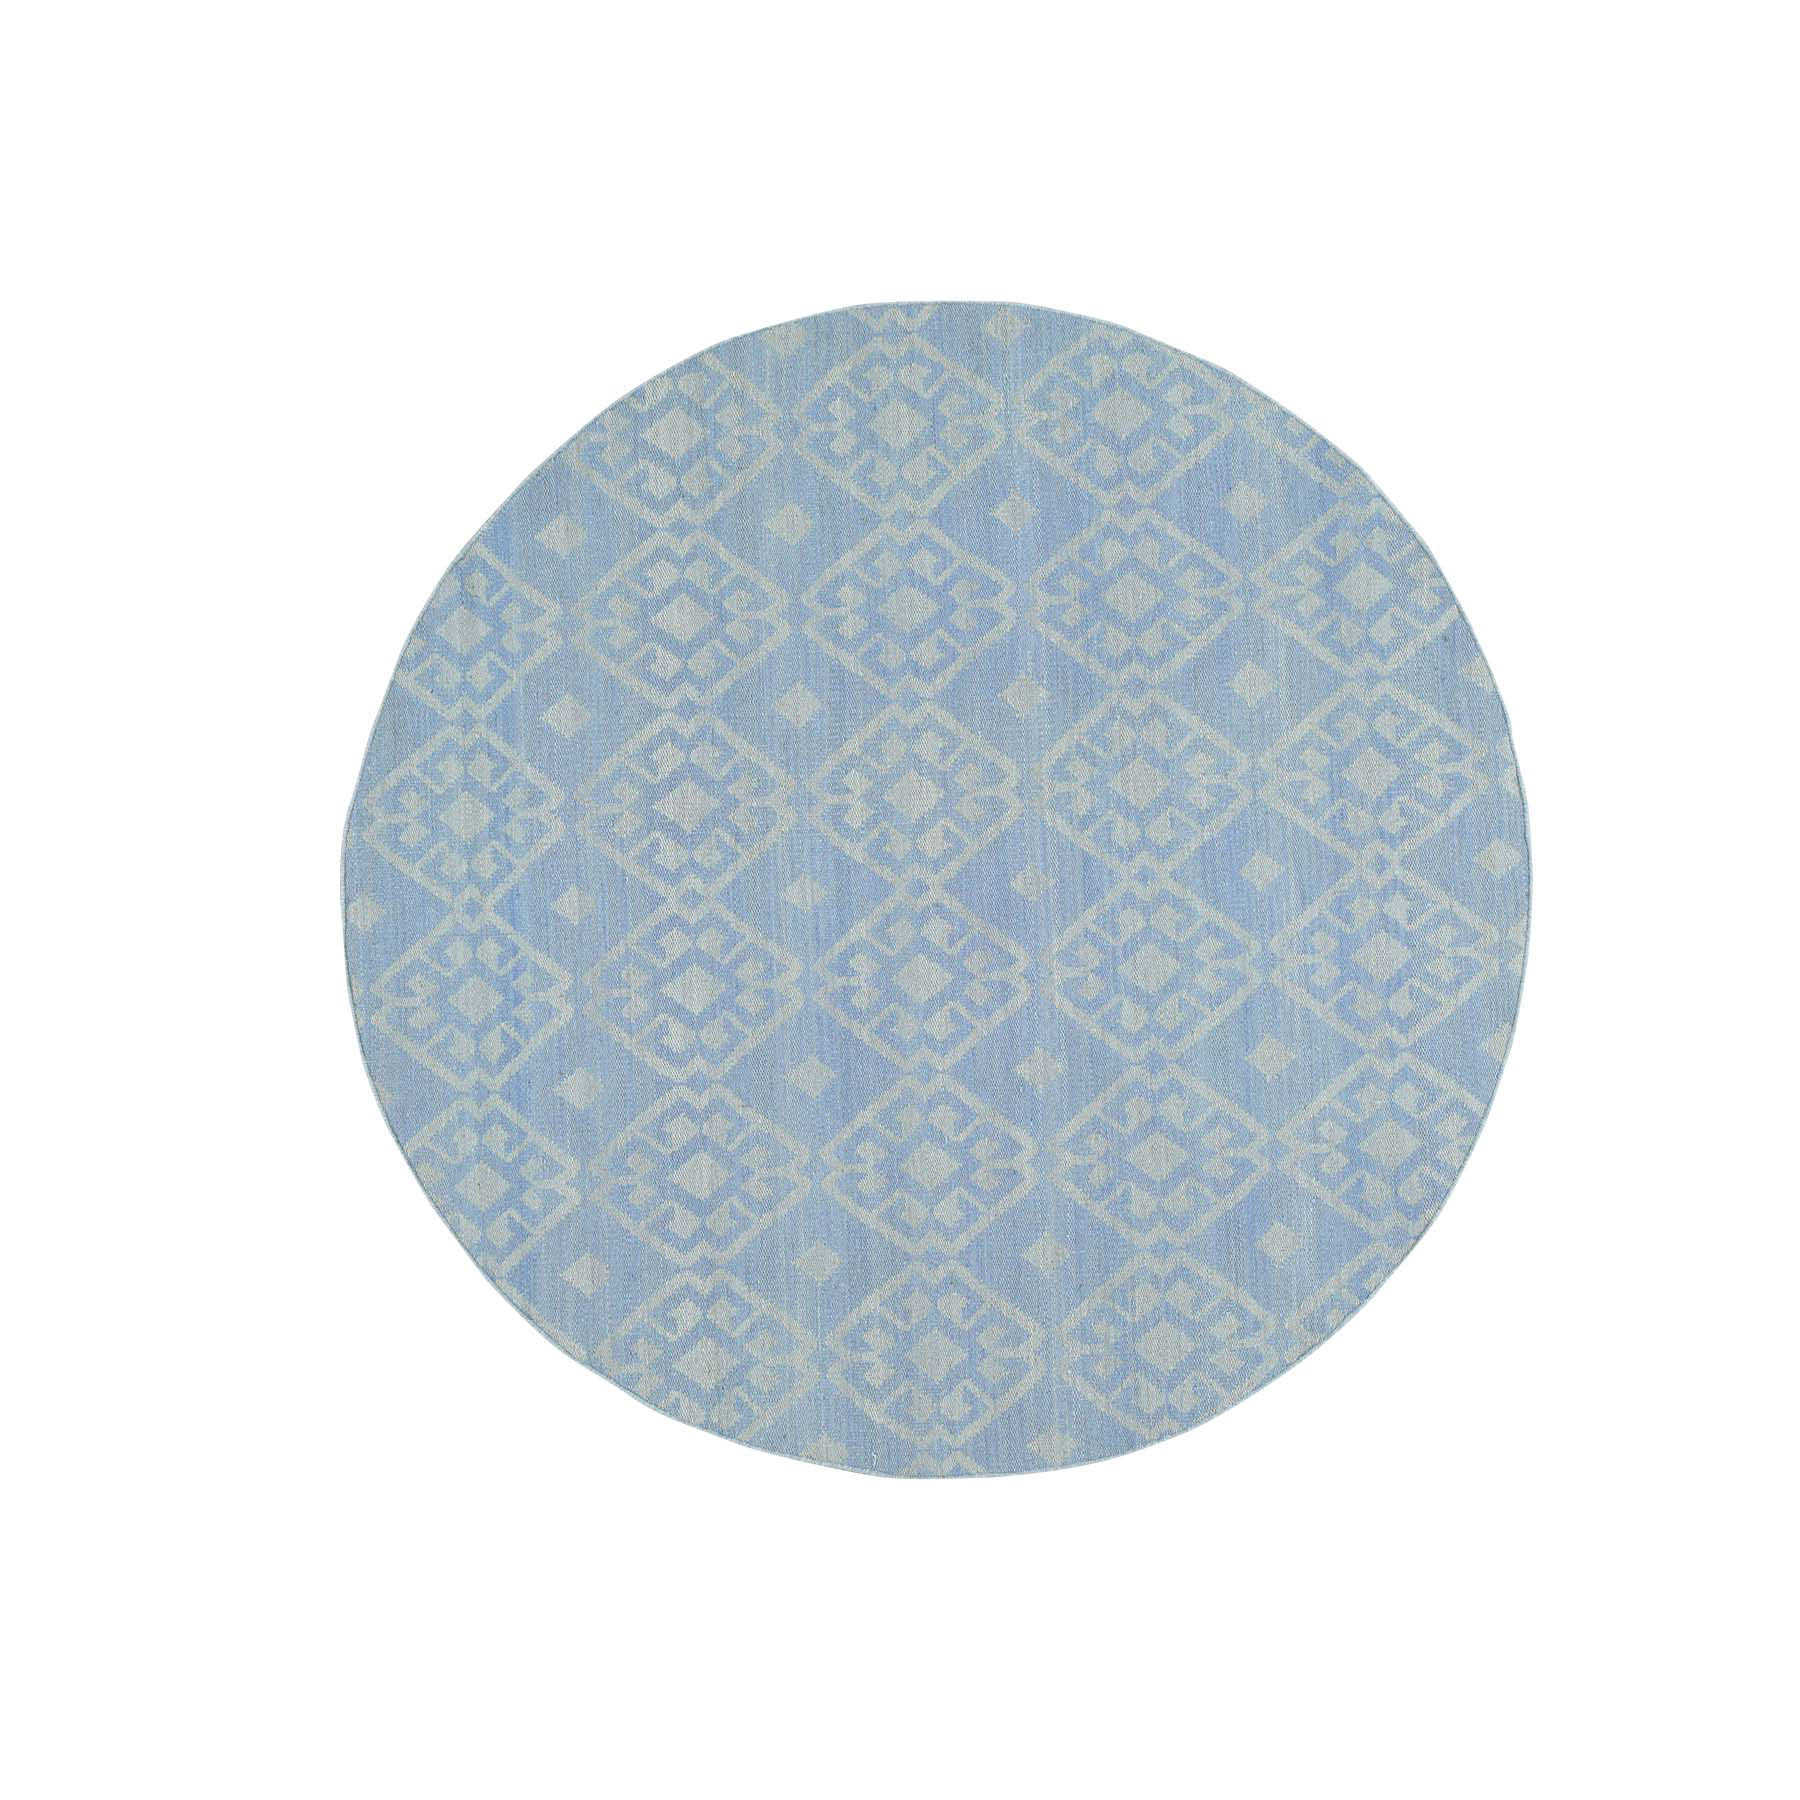 6'X6' Reversible Flat Weave Hand-Woven Durie Kilim Round Oriental Rug moac6b9a